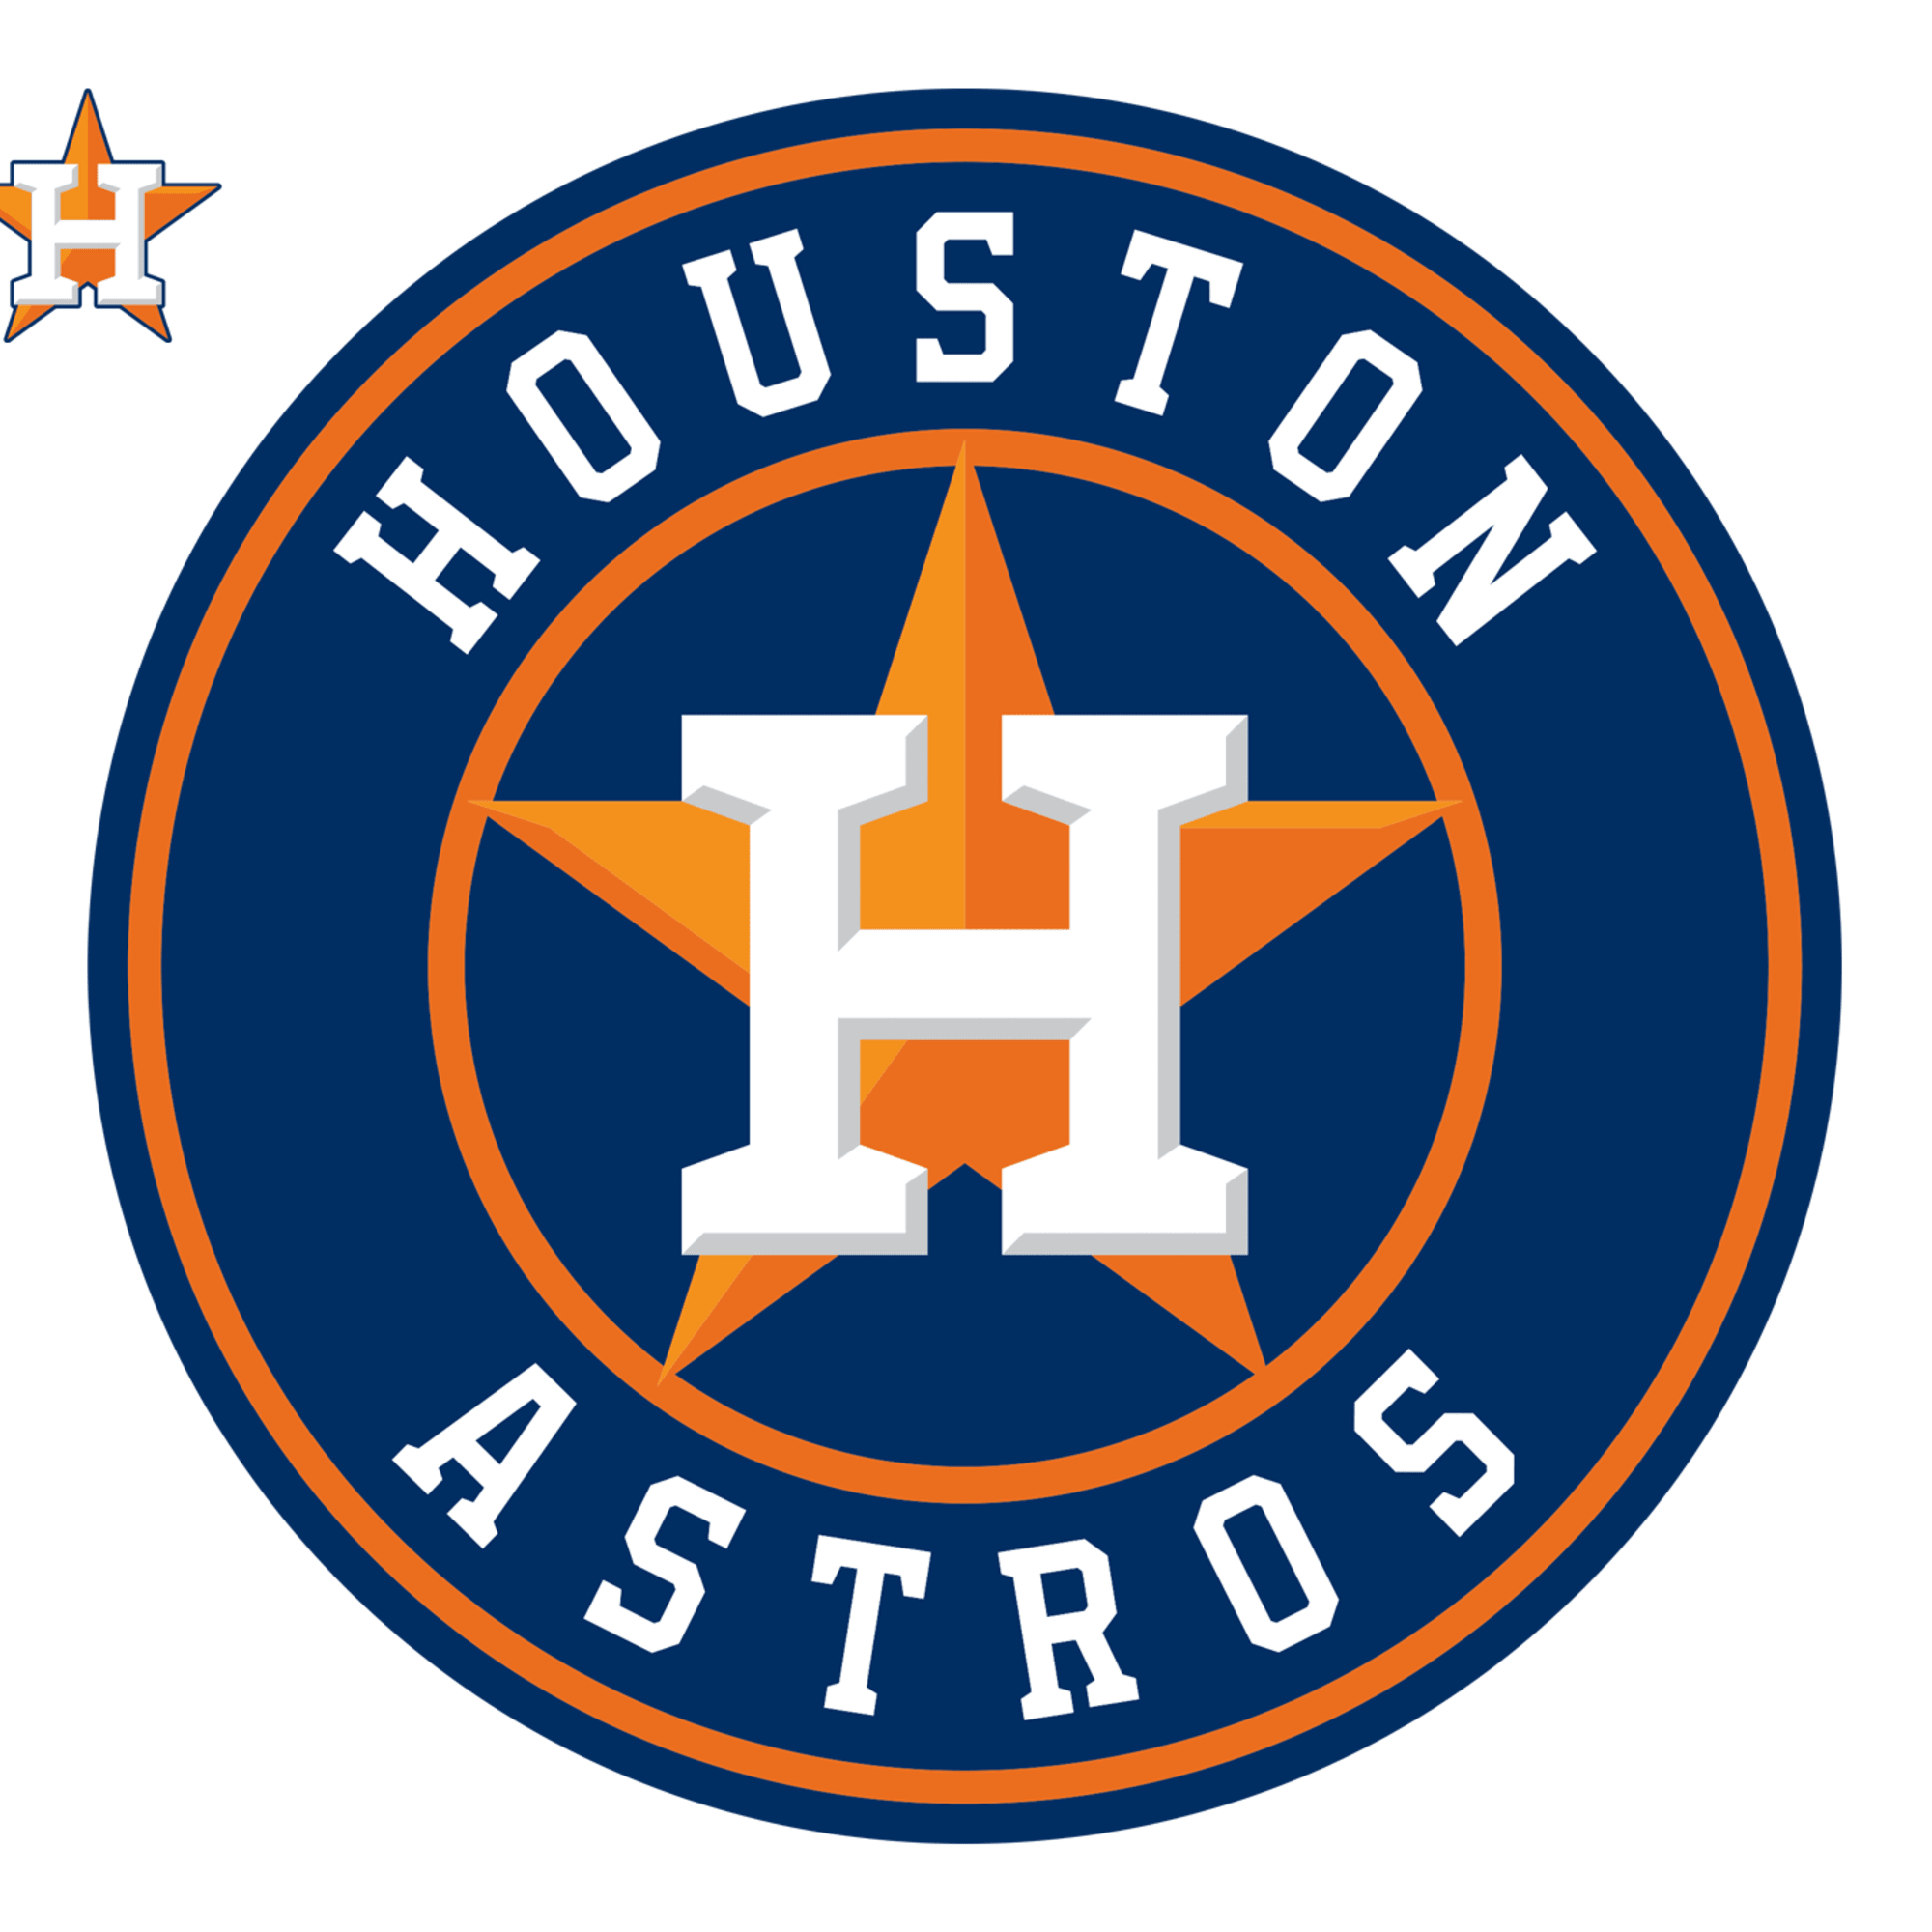 Houston Astros Logo Large Officially Licensed Mlb Removable Wall Decal Sports Team Logos Mlb Logos Astros Baseball